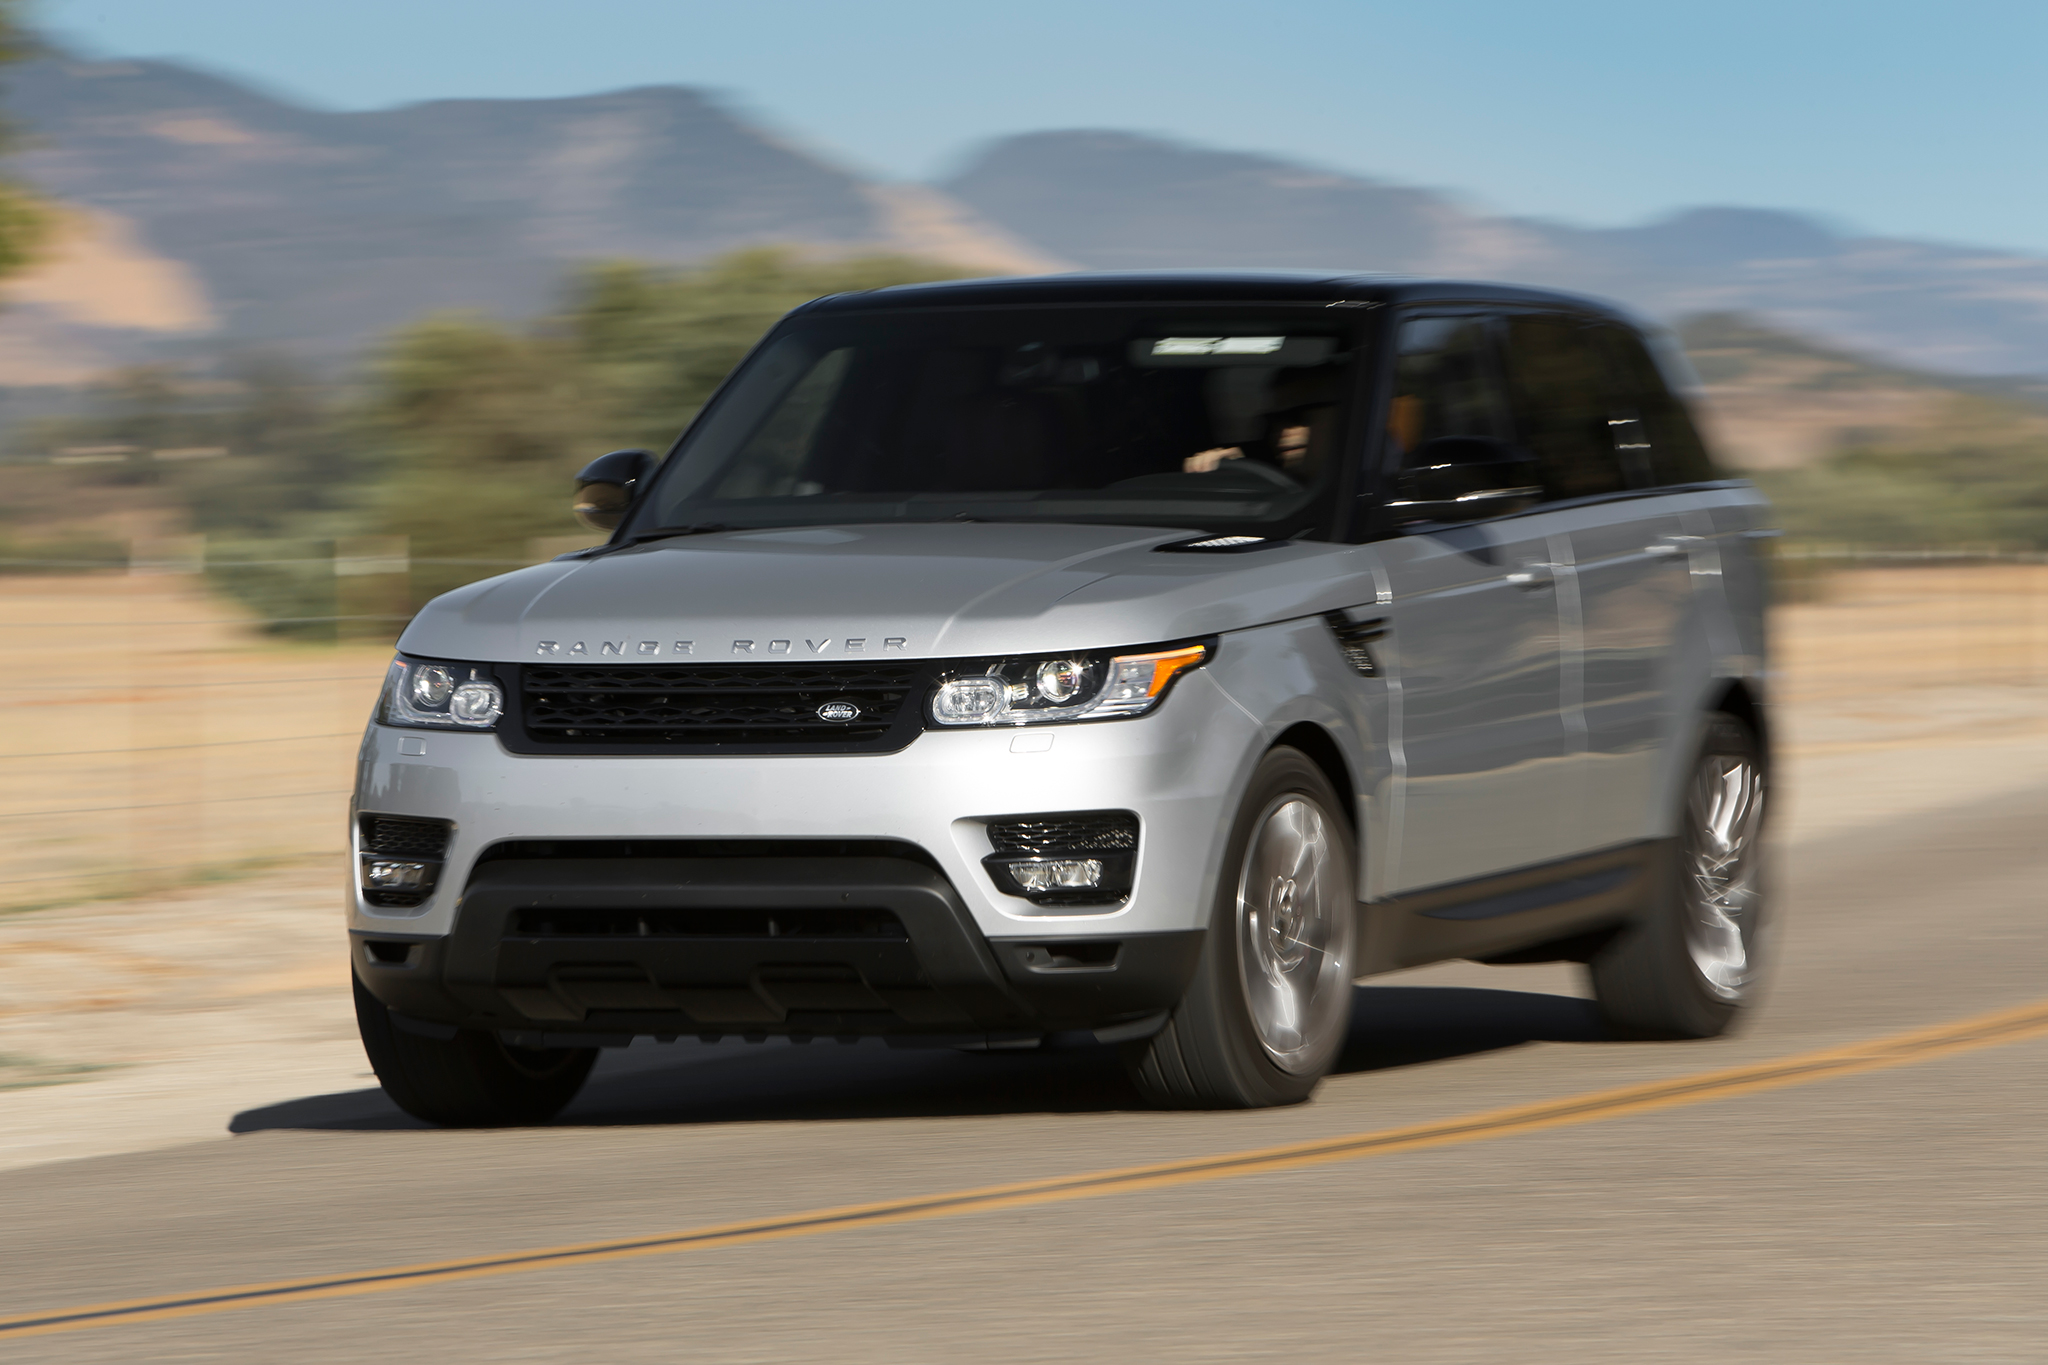 2019 Land Rover Supercharged Range Rover photo - 5